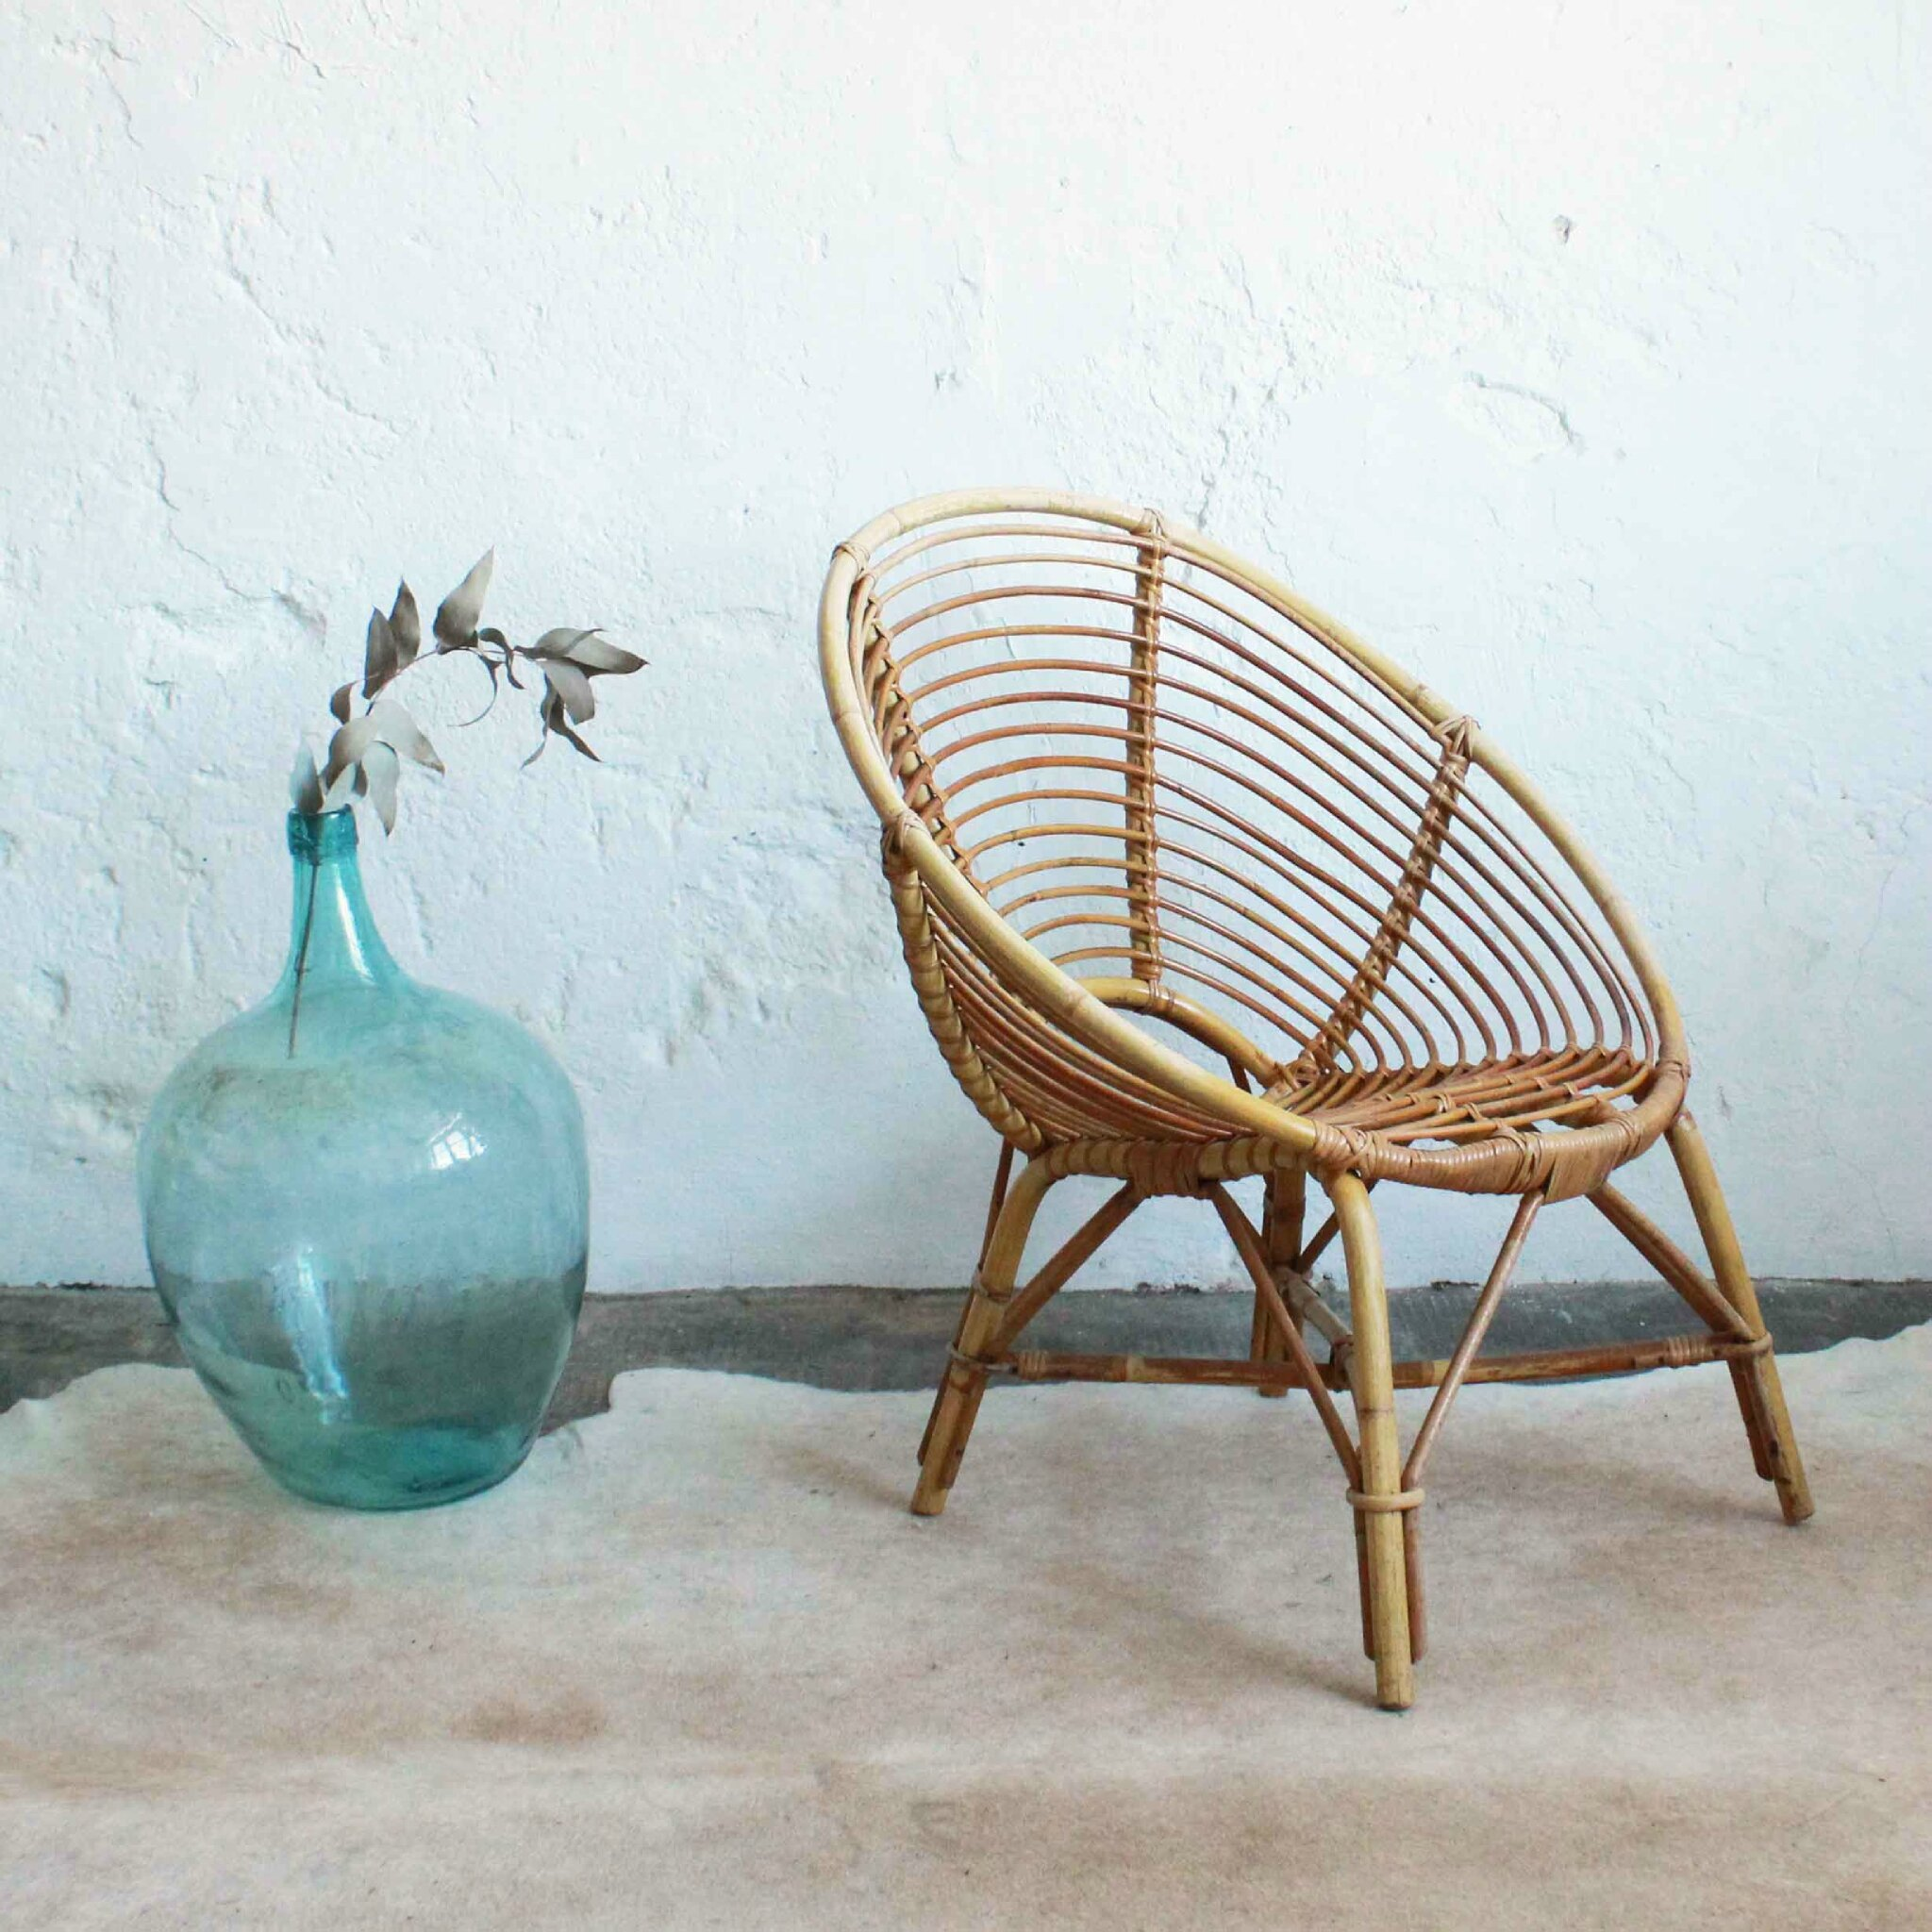 fauteuil rotin vintage forme spirale - Fauteuil Rotin Vintage